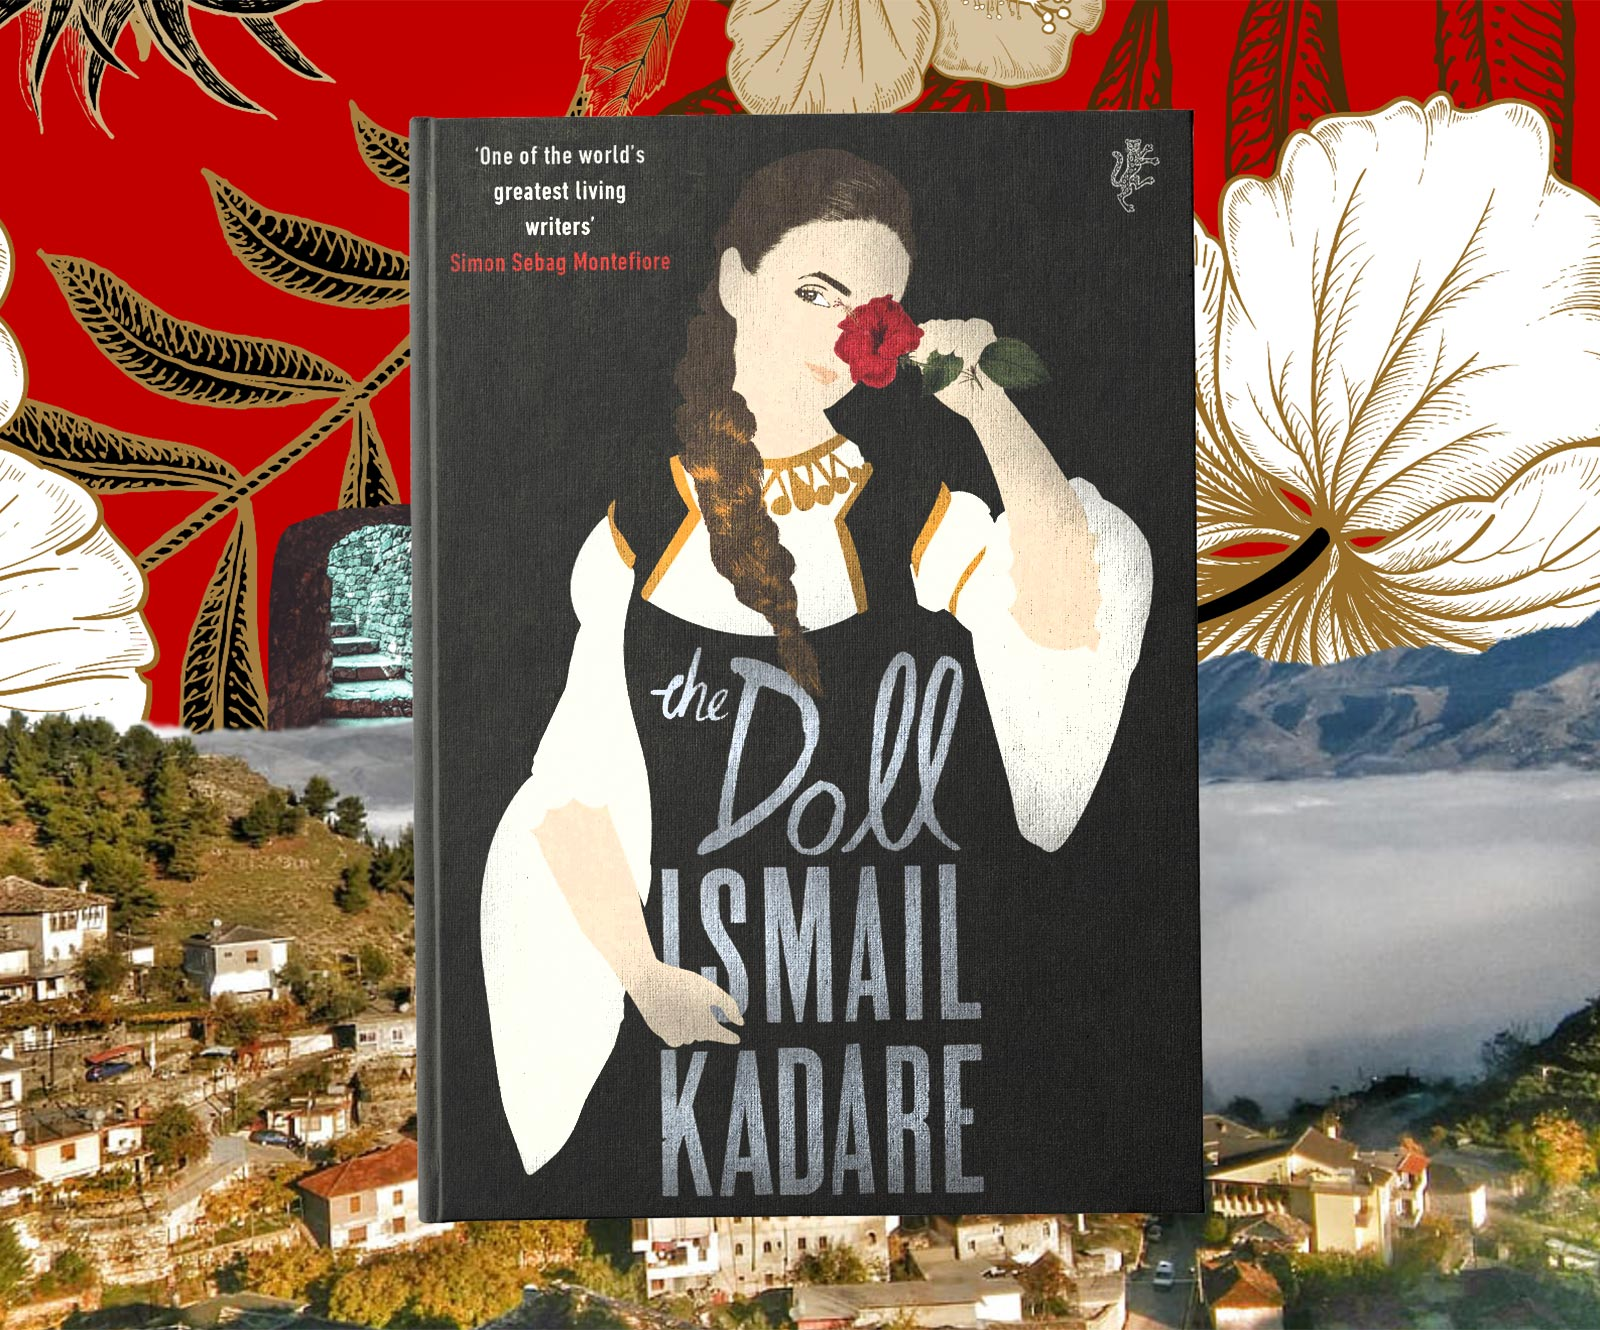 Can you ever truly know your mother? In the novel The Doll, Ismail Kadare thinks you can't